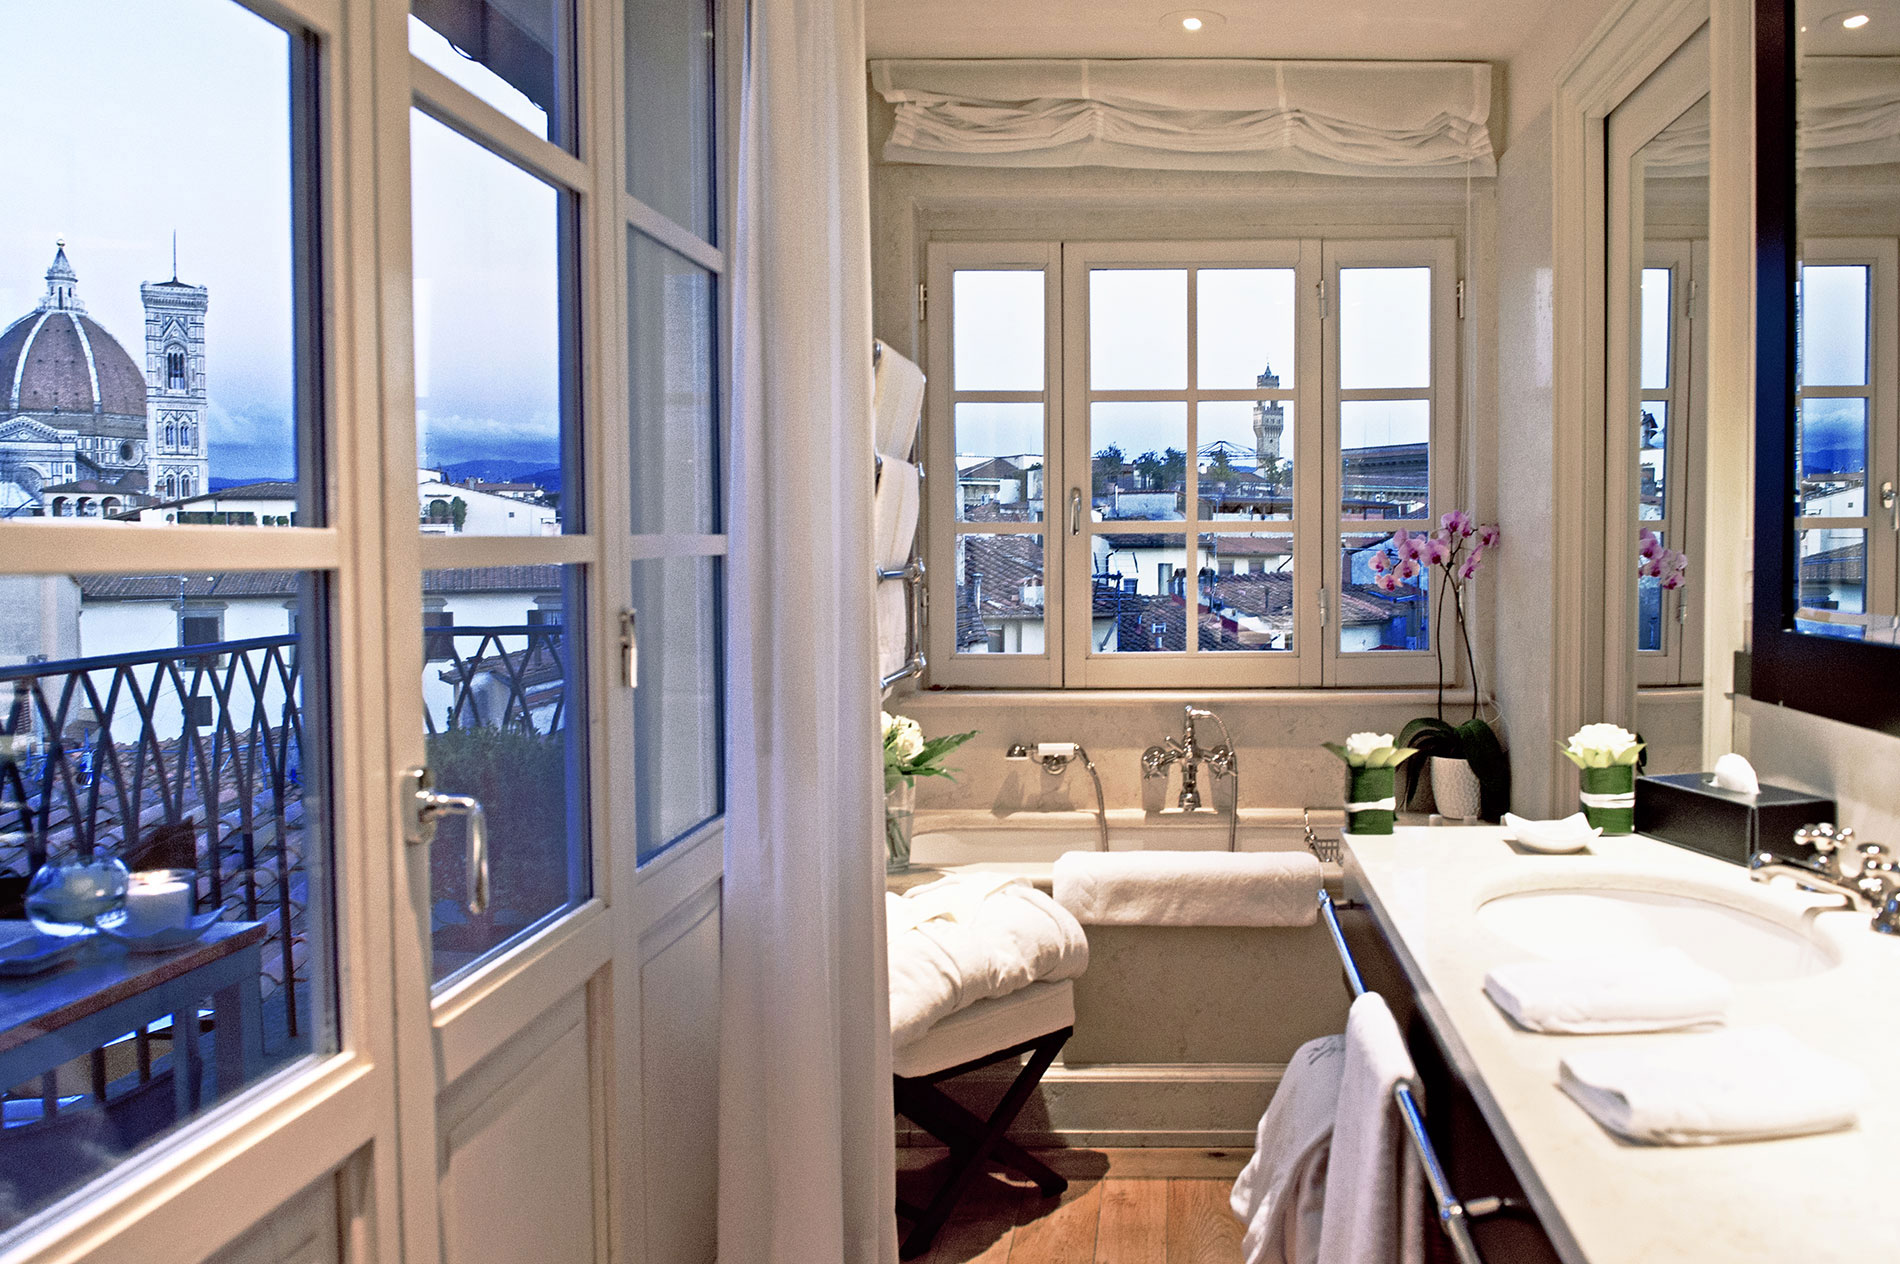 J.K.Place Firenze OFFICIAL SITE - Luxury Hotel Florence - Central ...